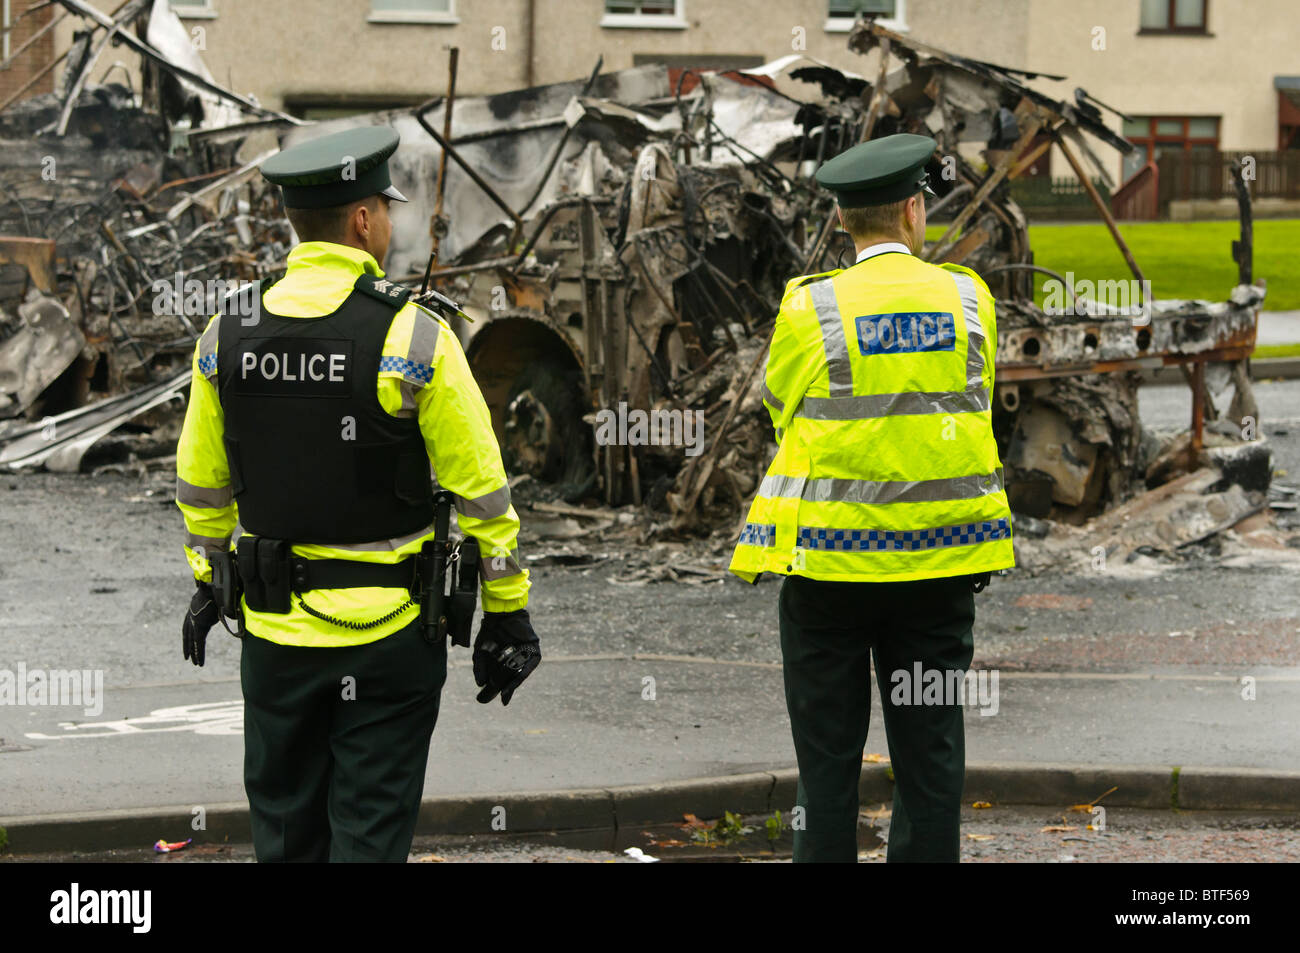 Two police officers at the scene of civil unrest, where a bus was hijacked and burned out. - Stock Image